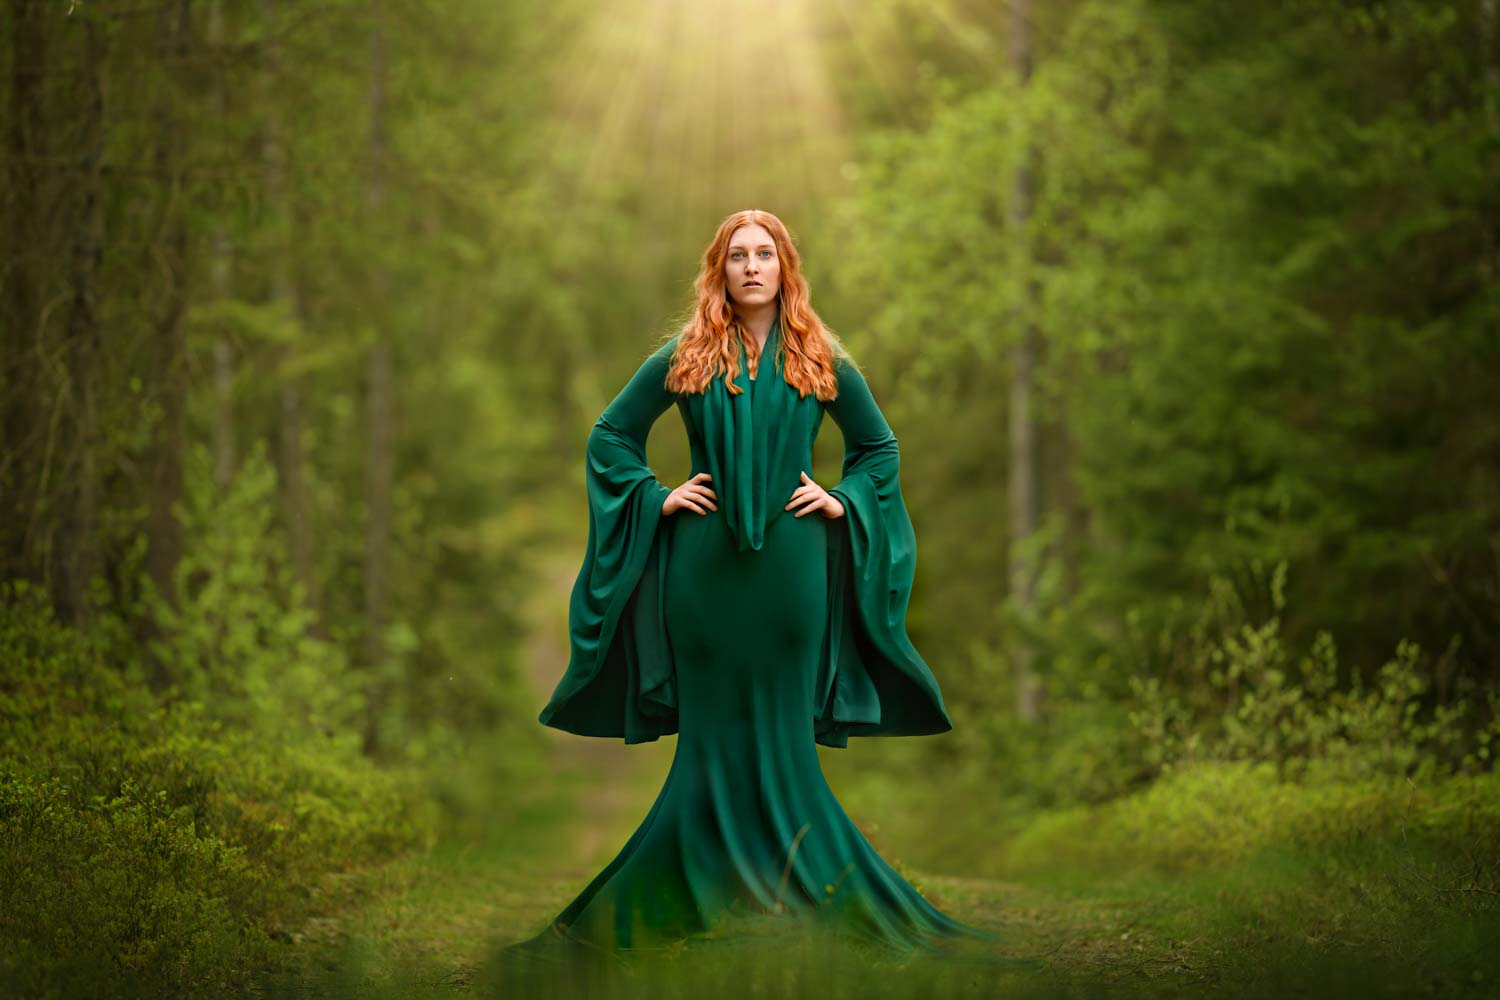 Sagofoto Lady of the Forest Fotograf Maria Lindberg